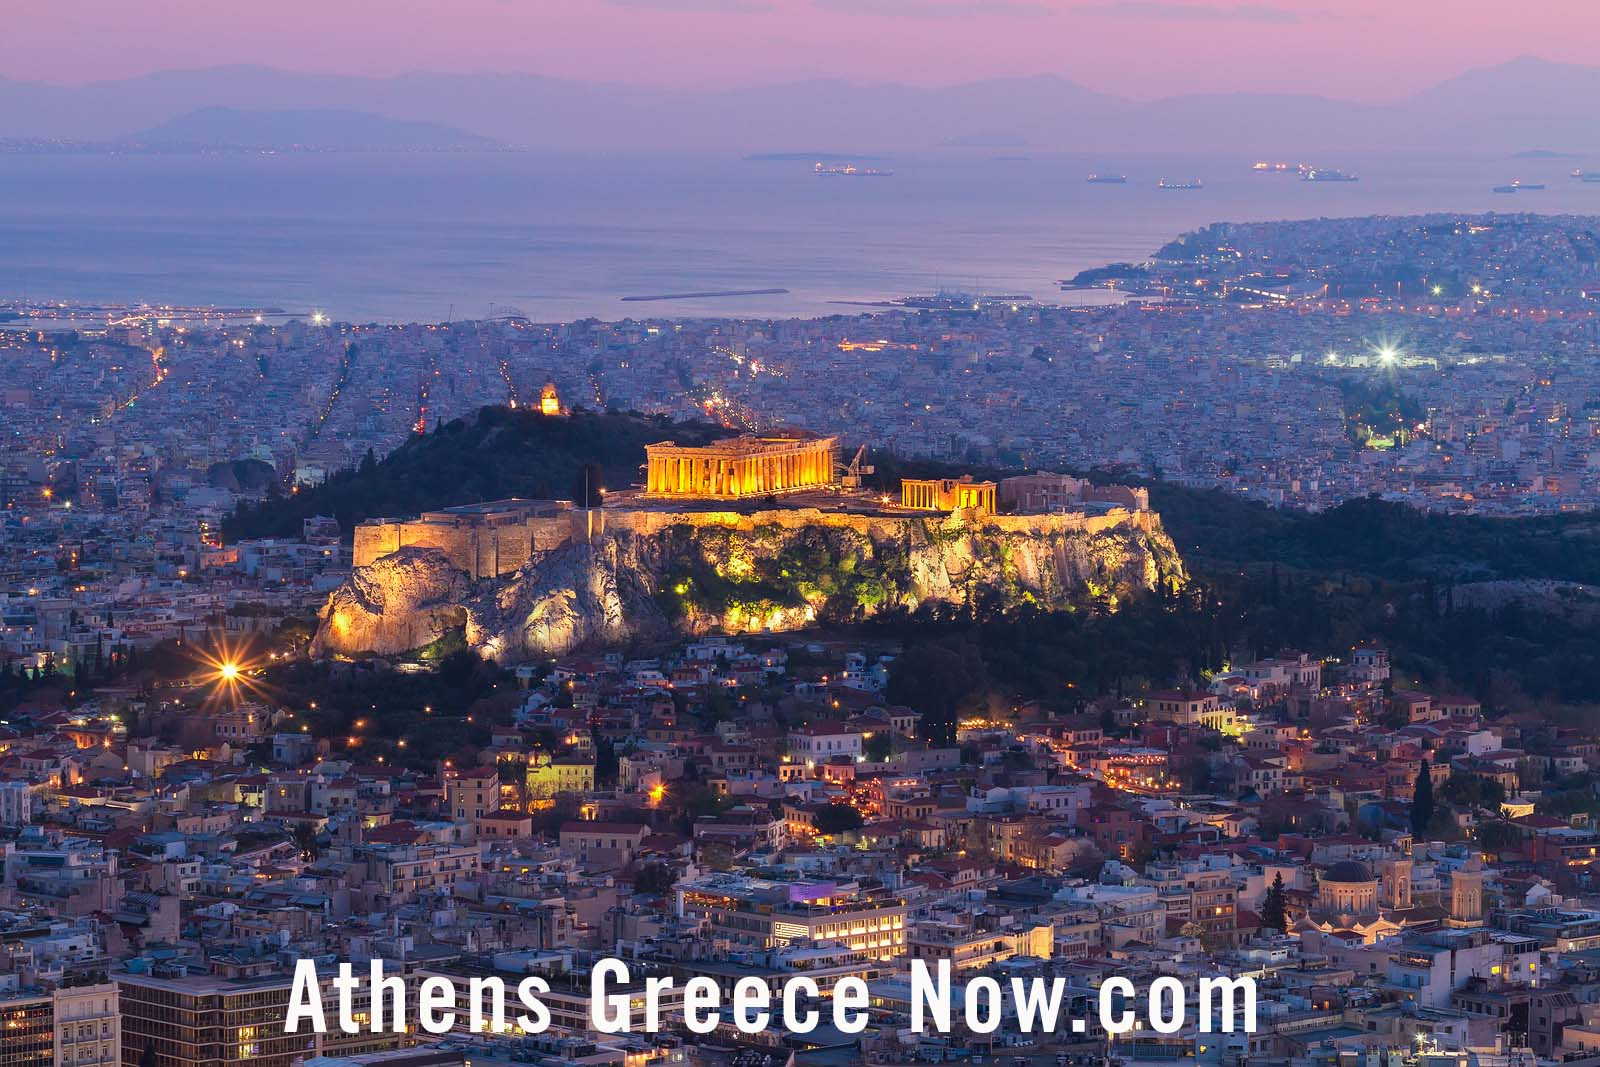 Hd Supreme Wallpaper The Acropolis In Athens Greece Cost Of Building The